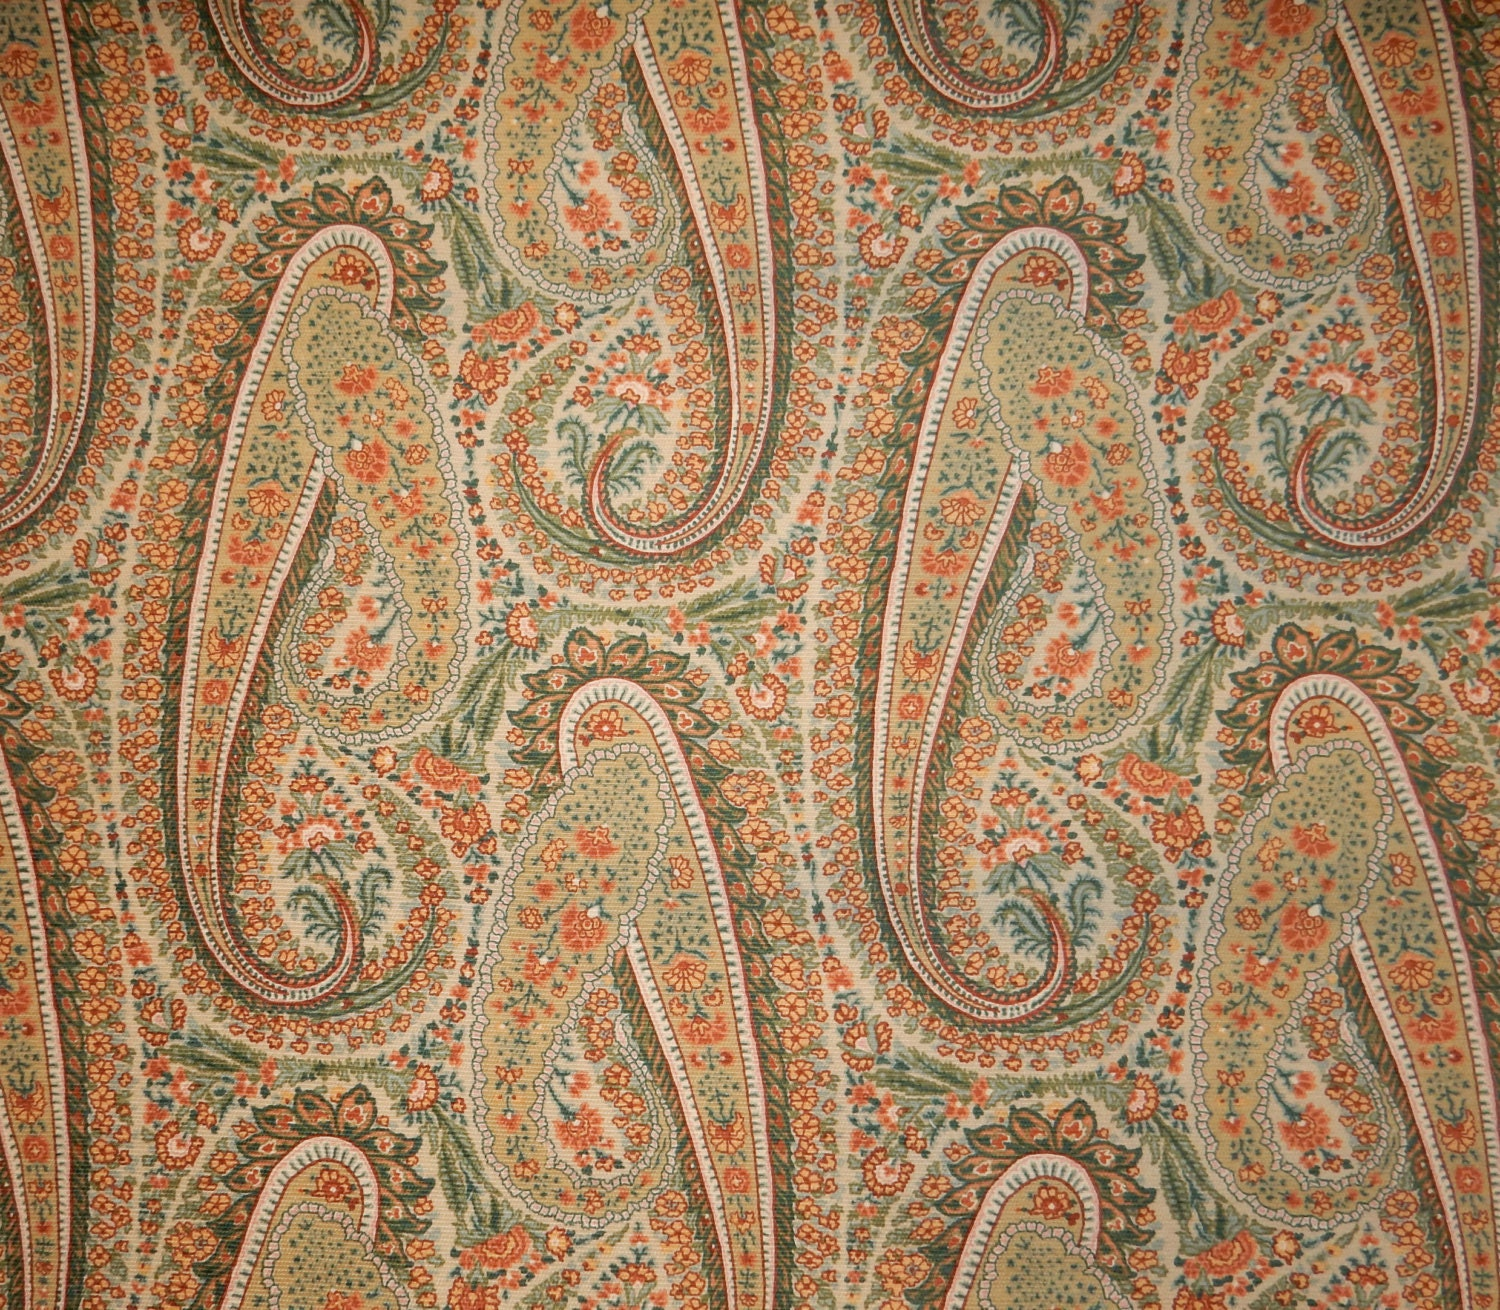 Colonial Williamsburg Foundation Monroe Paisley Fabric For Upholstery Home Decor Crafts Costume 1